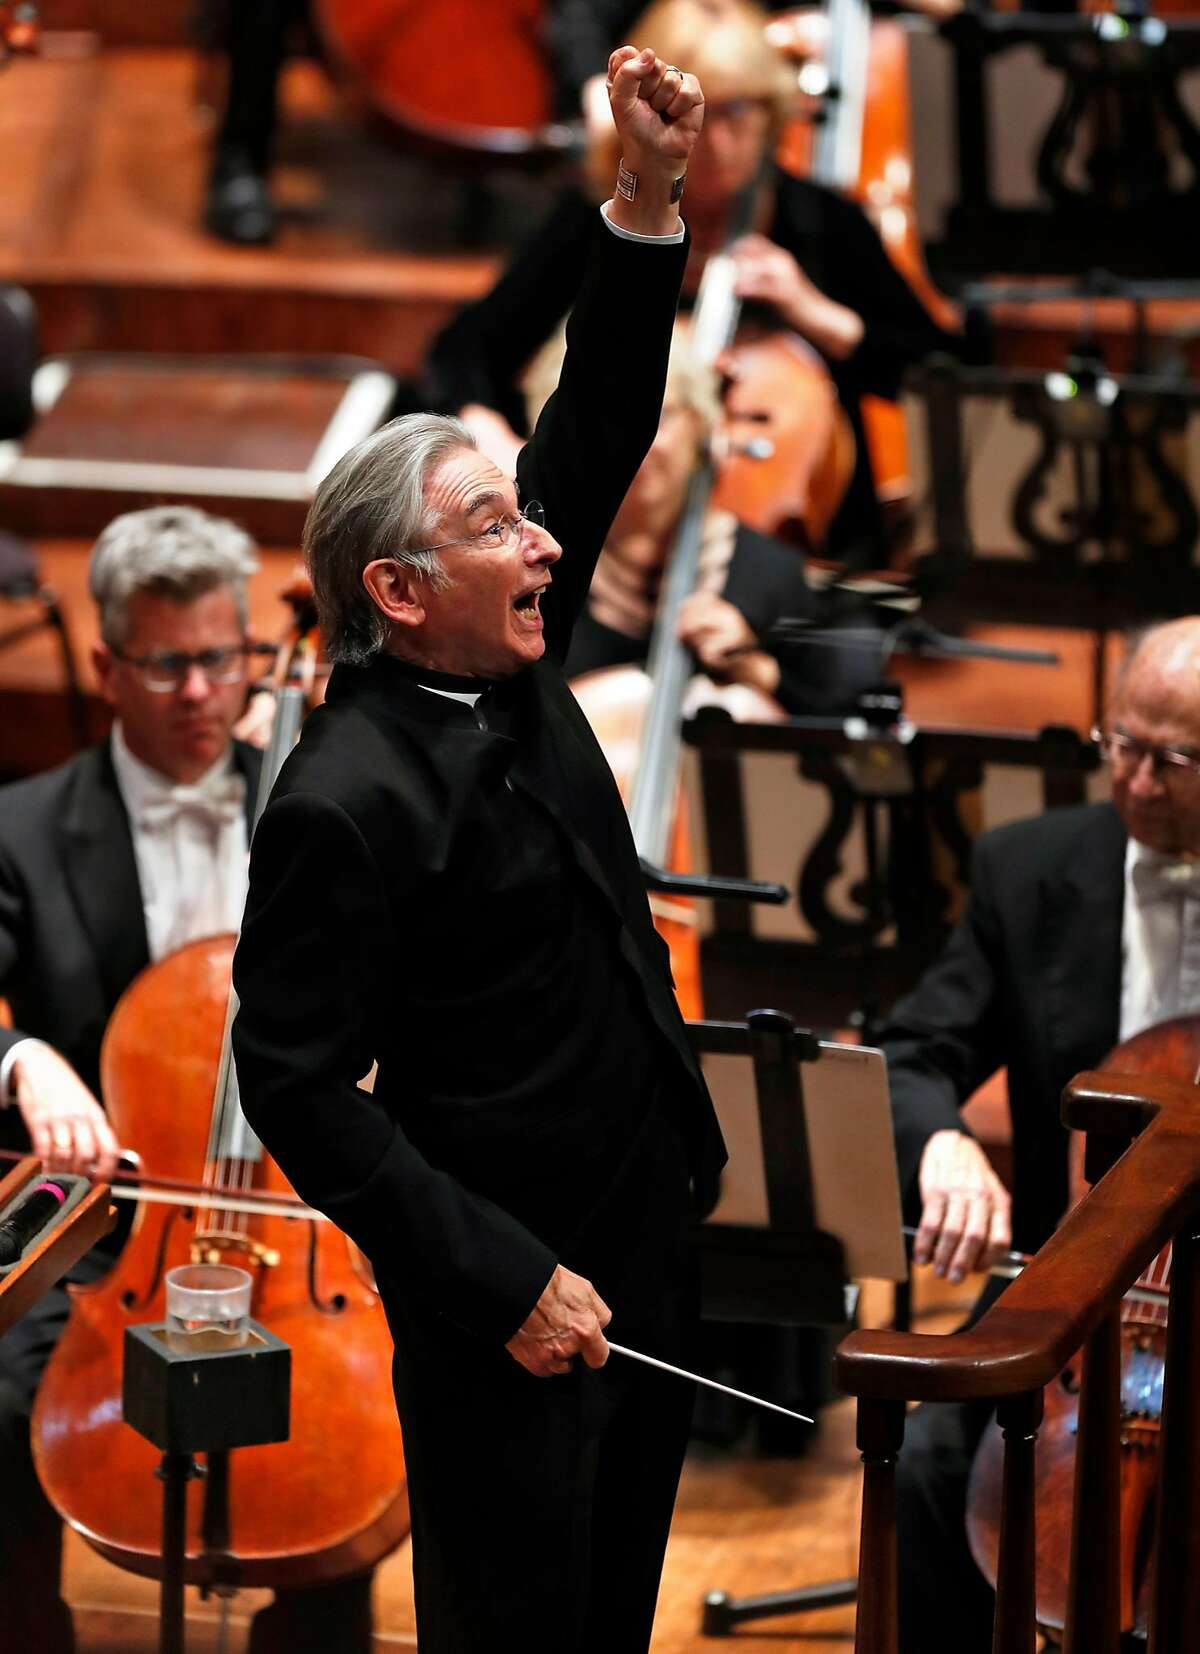 Music Director and Conductor Michael Tilson Thomas during San Francisco Symphony Opening Night Gala concert at Davies Symphony Hall in San Francisco, Calif., on Thursday, September 14, 2017.